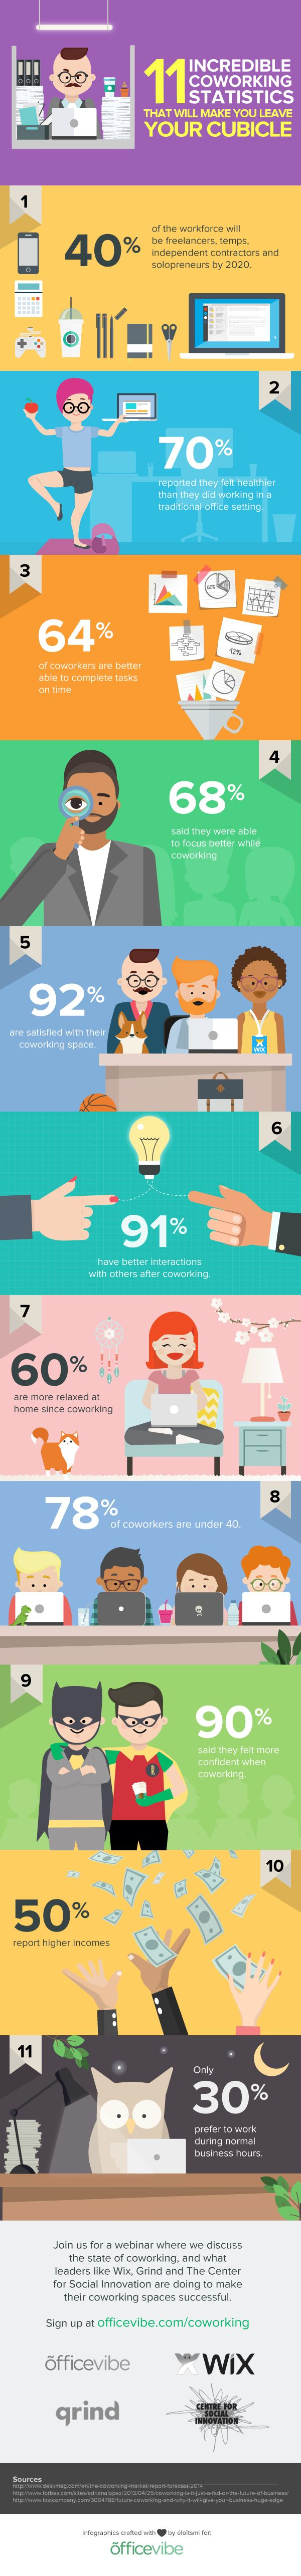 11 Incredible #Coworking Statistics That Will Make You Leave Your Cubicle (#Infographic) | Jeff Fermin